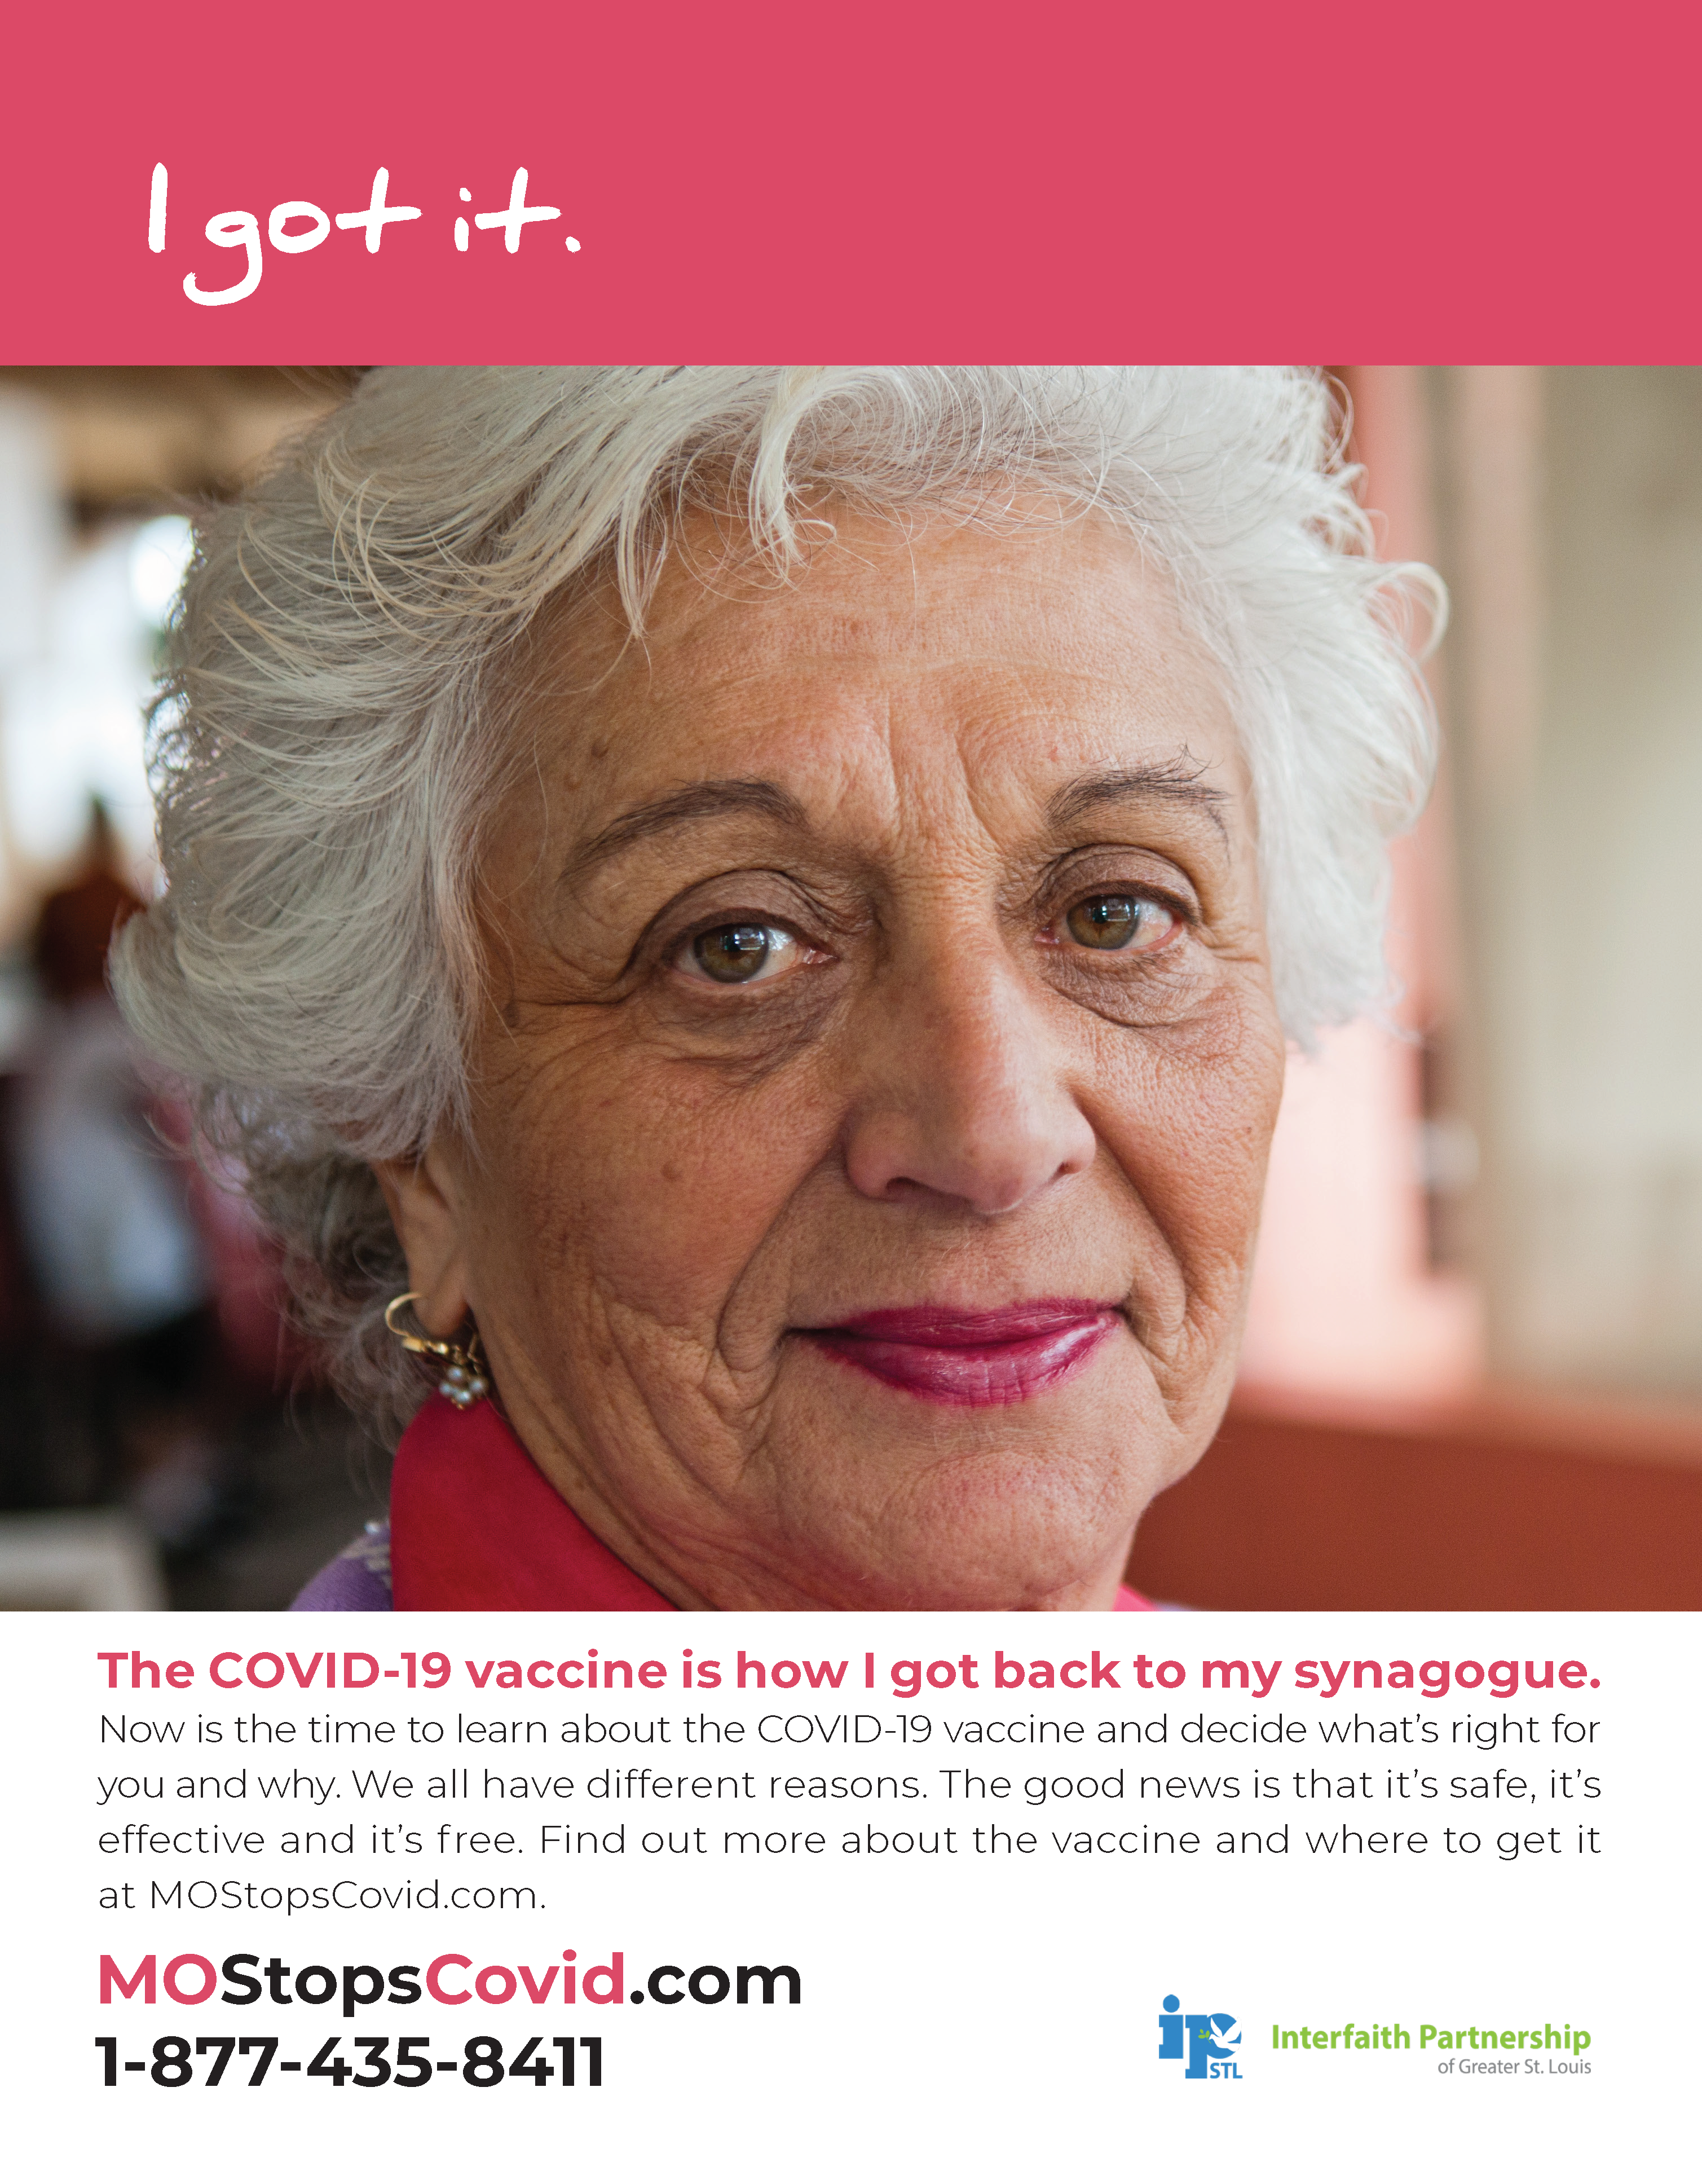 """Photograph of an older woman smiling directly at the camera. Above, the text reads """"I got it"""" over a red border. Below, the text reads, """"The COVID-19 vaccine is how I got back to my synagogue. Now is the time to learn about the COVID-19 vaccine and decide what's right for you and why. We all have different reasons. The good news is that it's safe, it's effective and it's free. Find out more about the vaccine and where to get it at MOStopsCovid.com or by calling 1-877-435-8411. Courtesy of Interfaith Partnership of Greater St. Louis."""